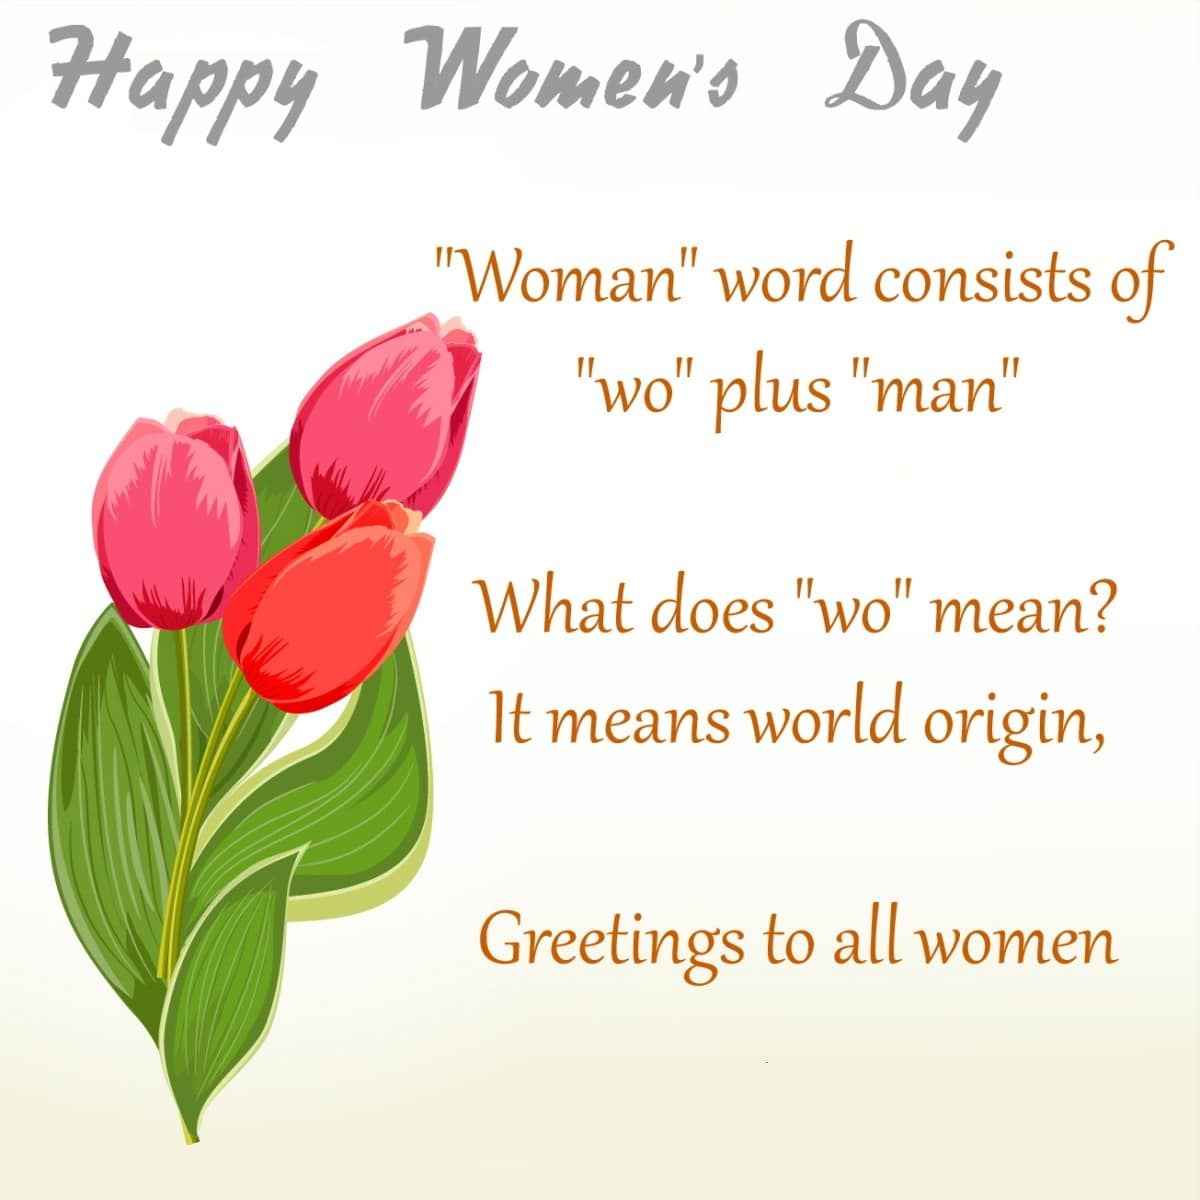 Happy Women's Day Sayings